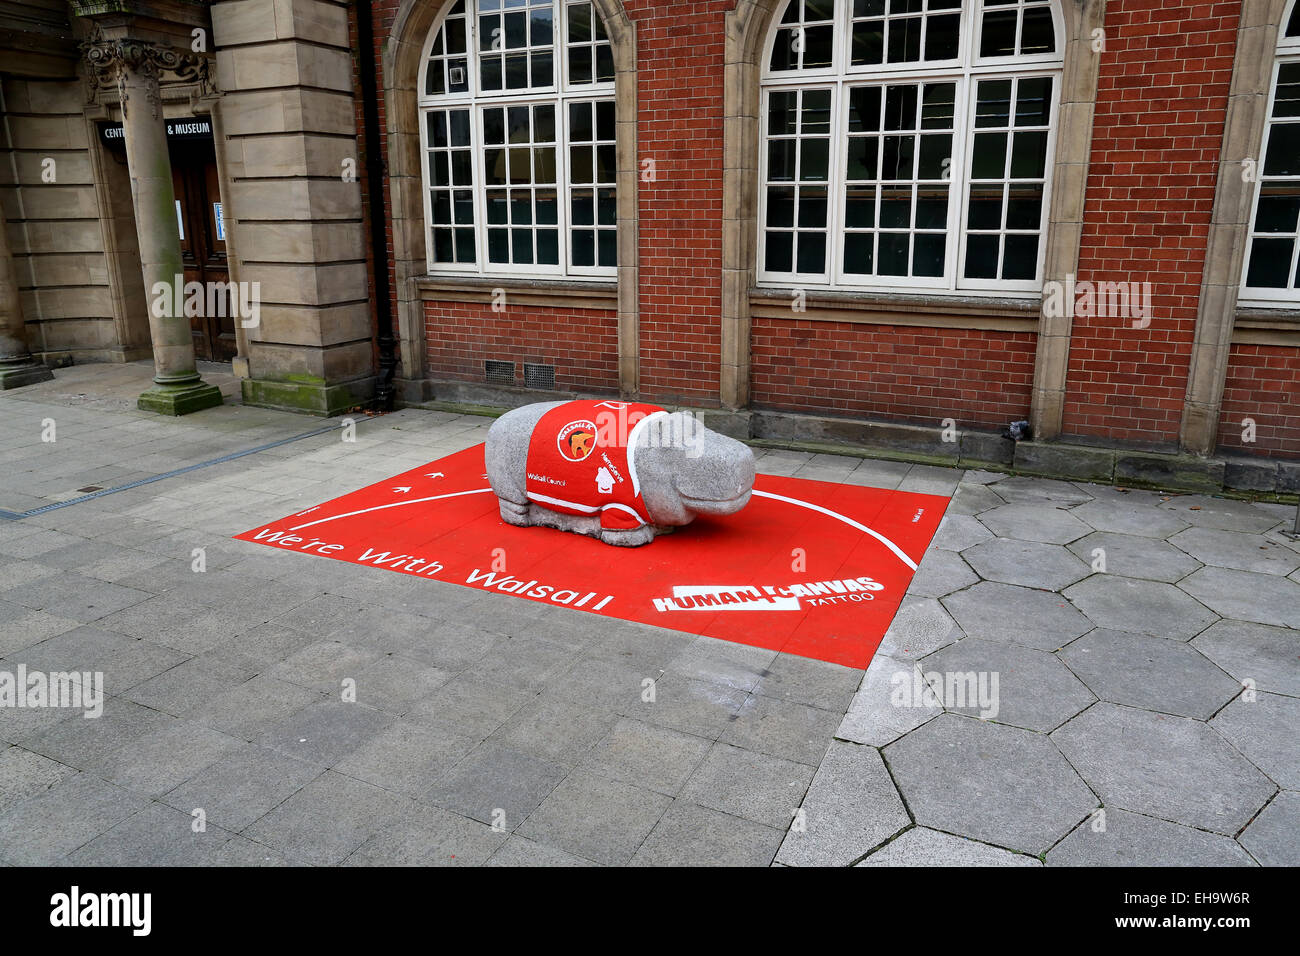 Walsall Football Club promotion in Walsall town centre in preparation for their trip to Wembley. A concrete hippo - Stock Image